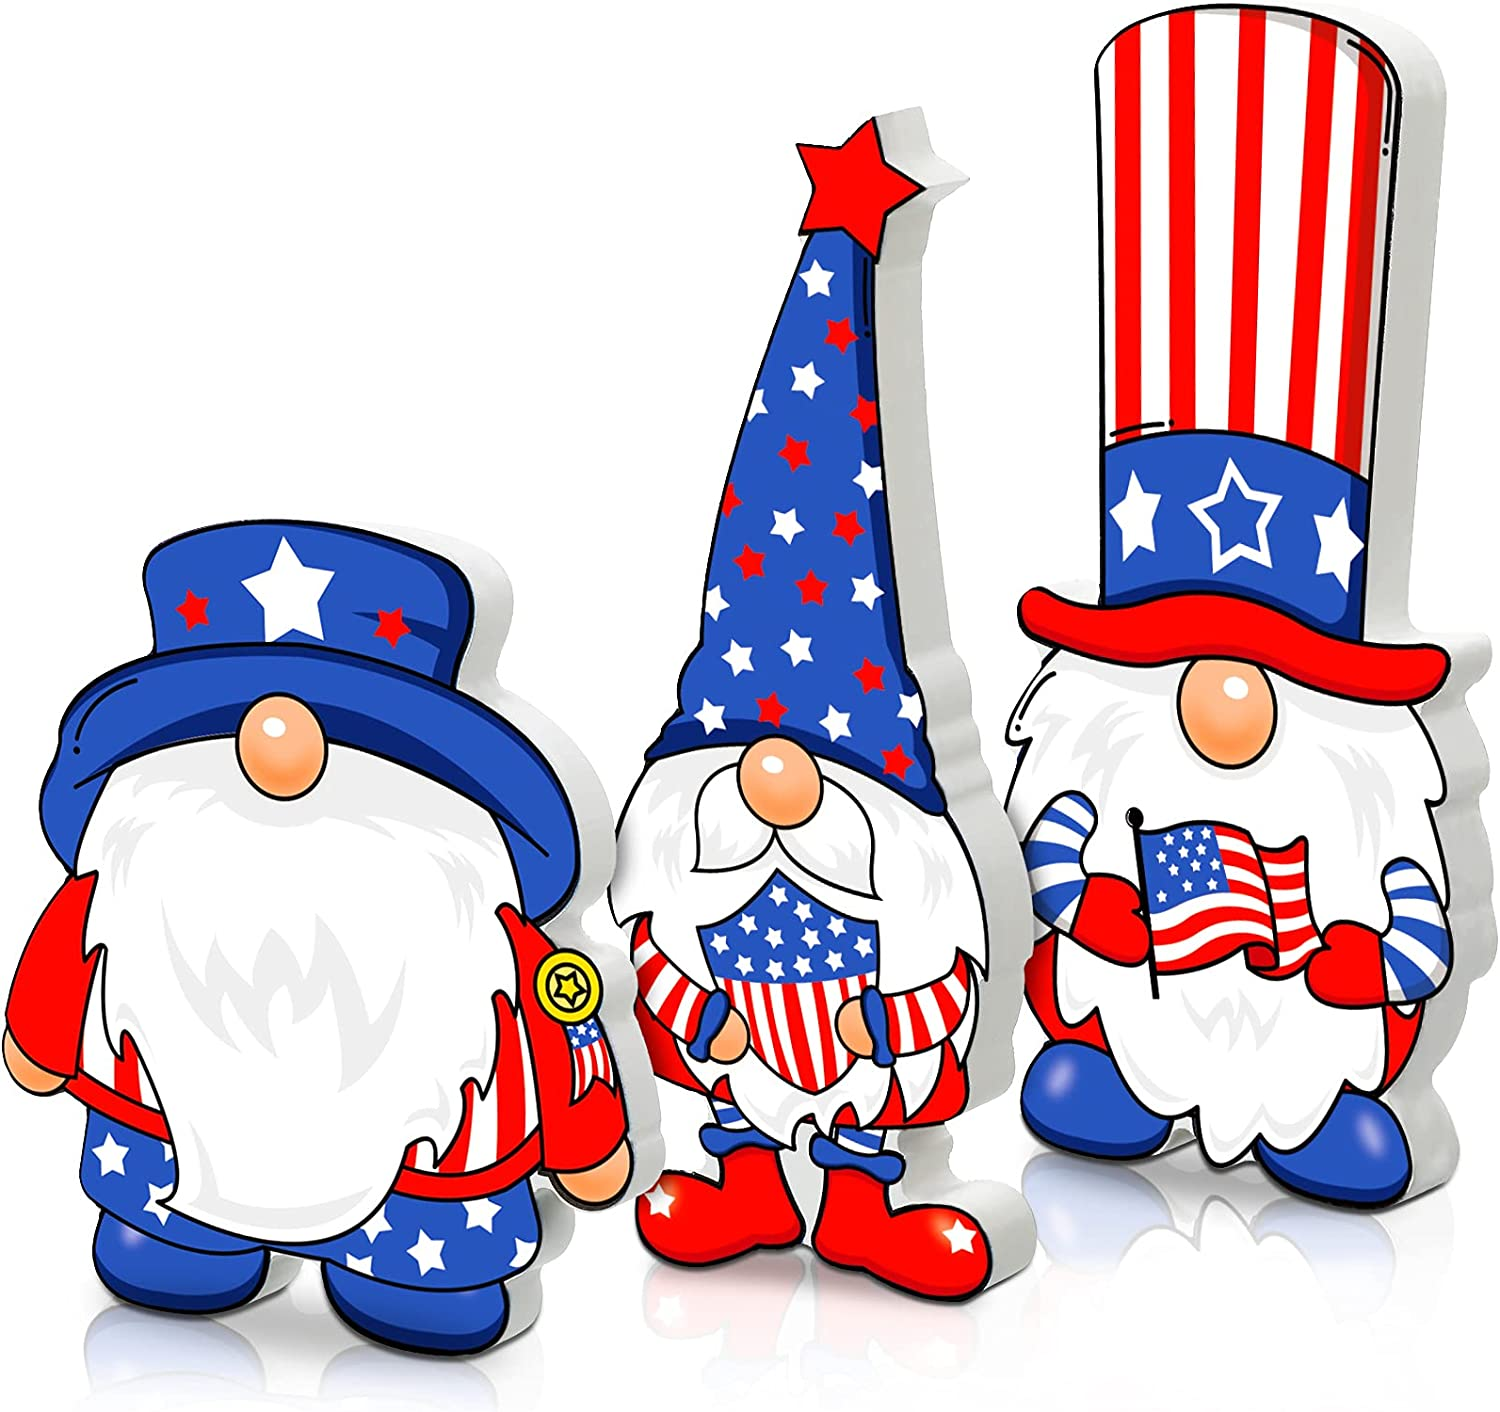 3 Pieces Independence Day Gnome Wooden Sign Patriotic Gnome Tiered Tray Decoration 4th of July Freestanding American Gnome Wooden Block for Veterans Day Home Office Desk Table Decor, 5.9 x 5.3 Inch